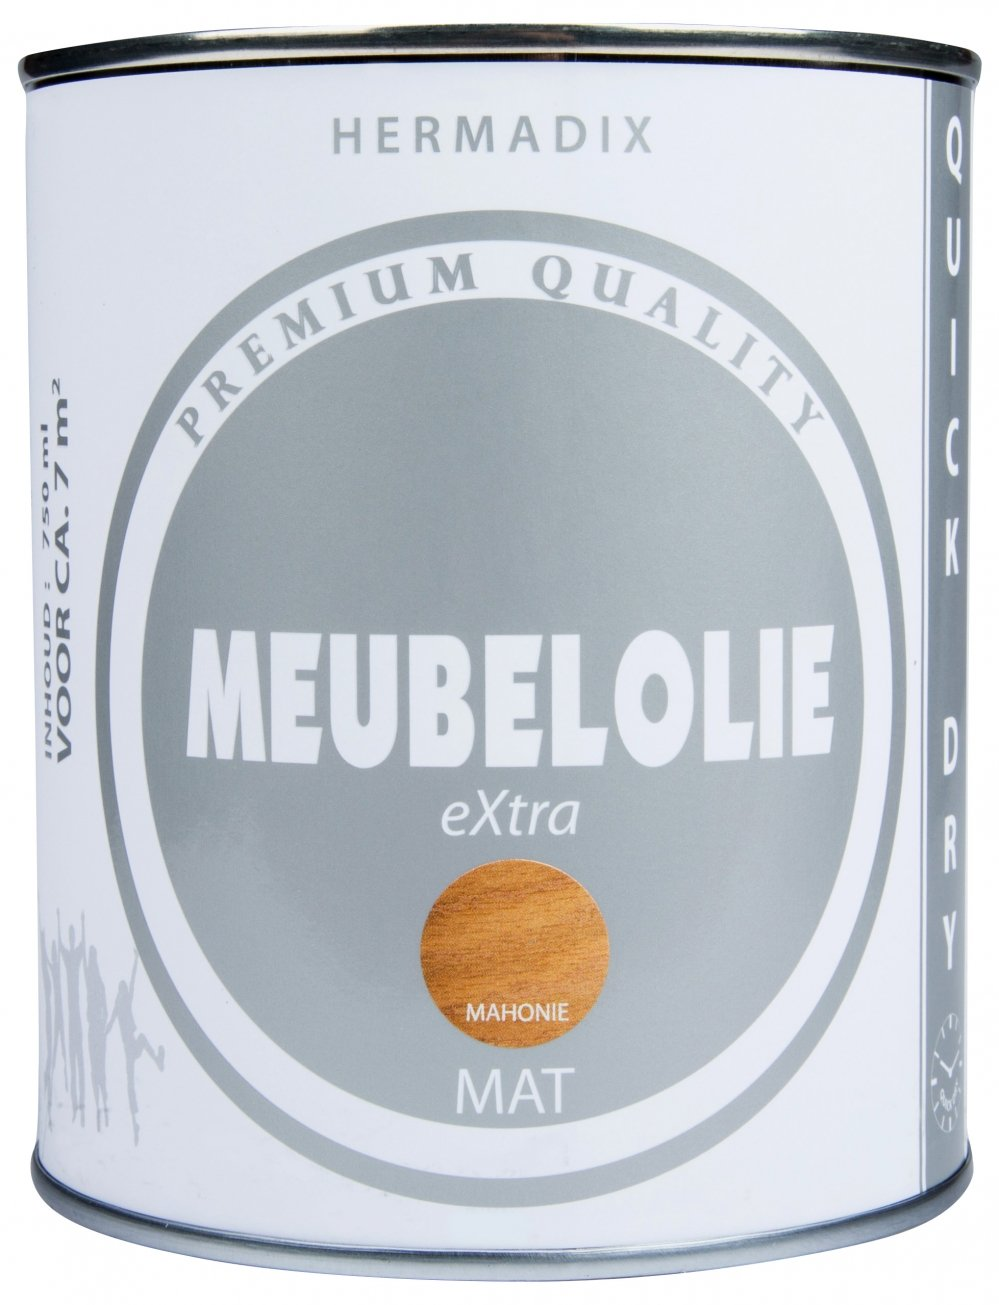 hermadix-meubellolie-extra-mat-mahonie-verfcompleet.nl